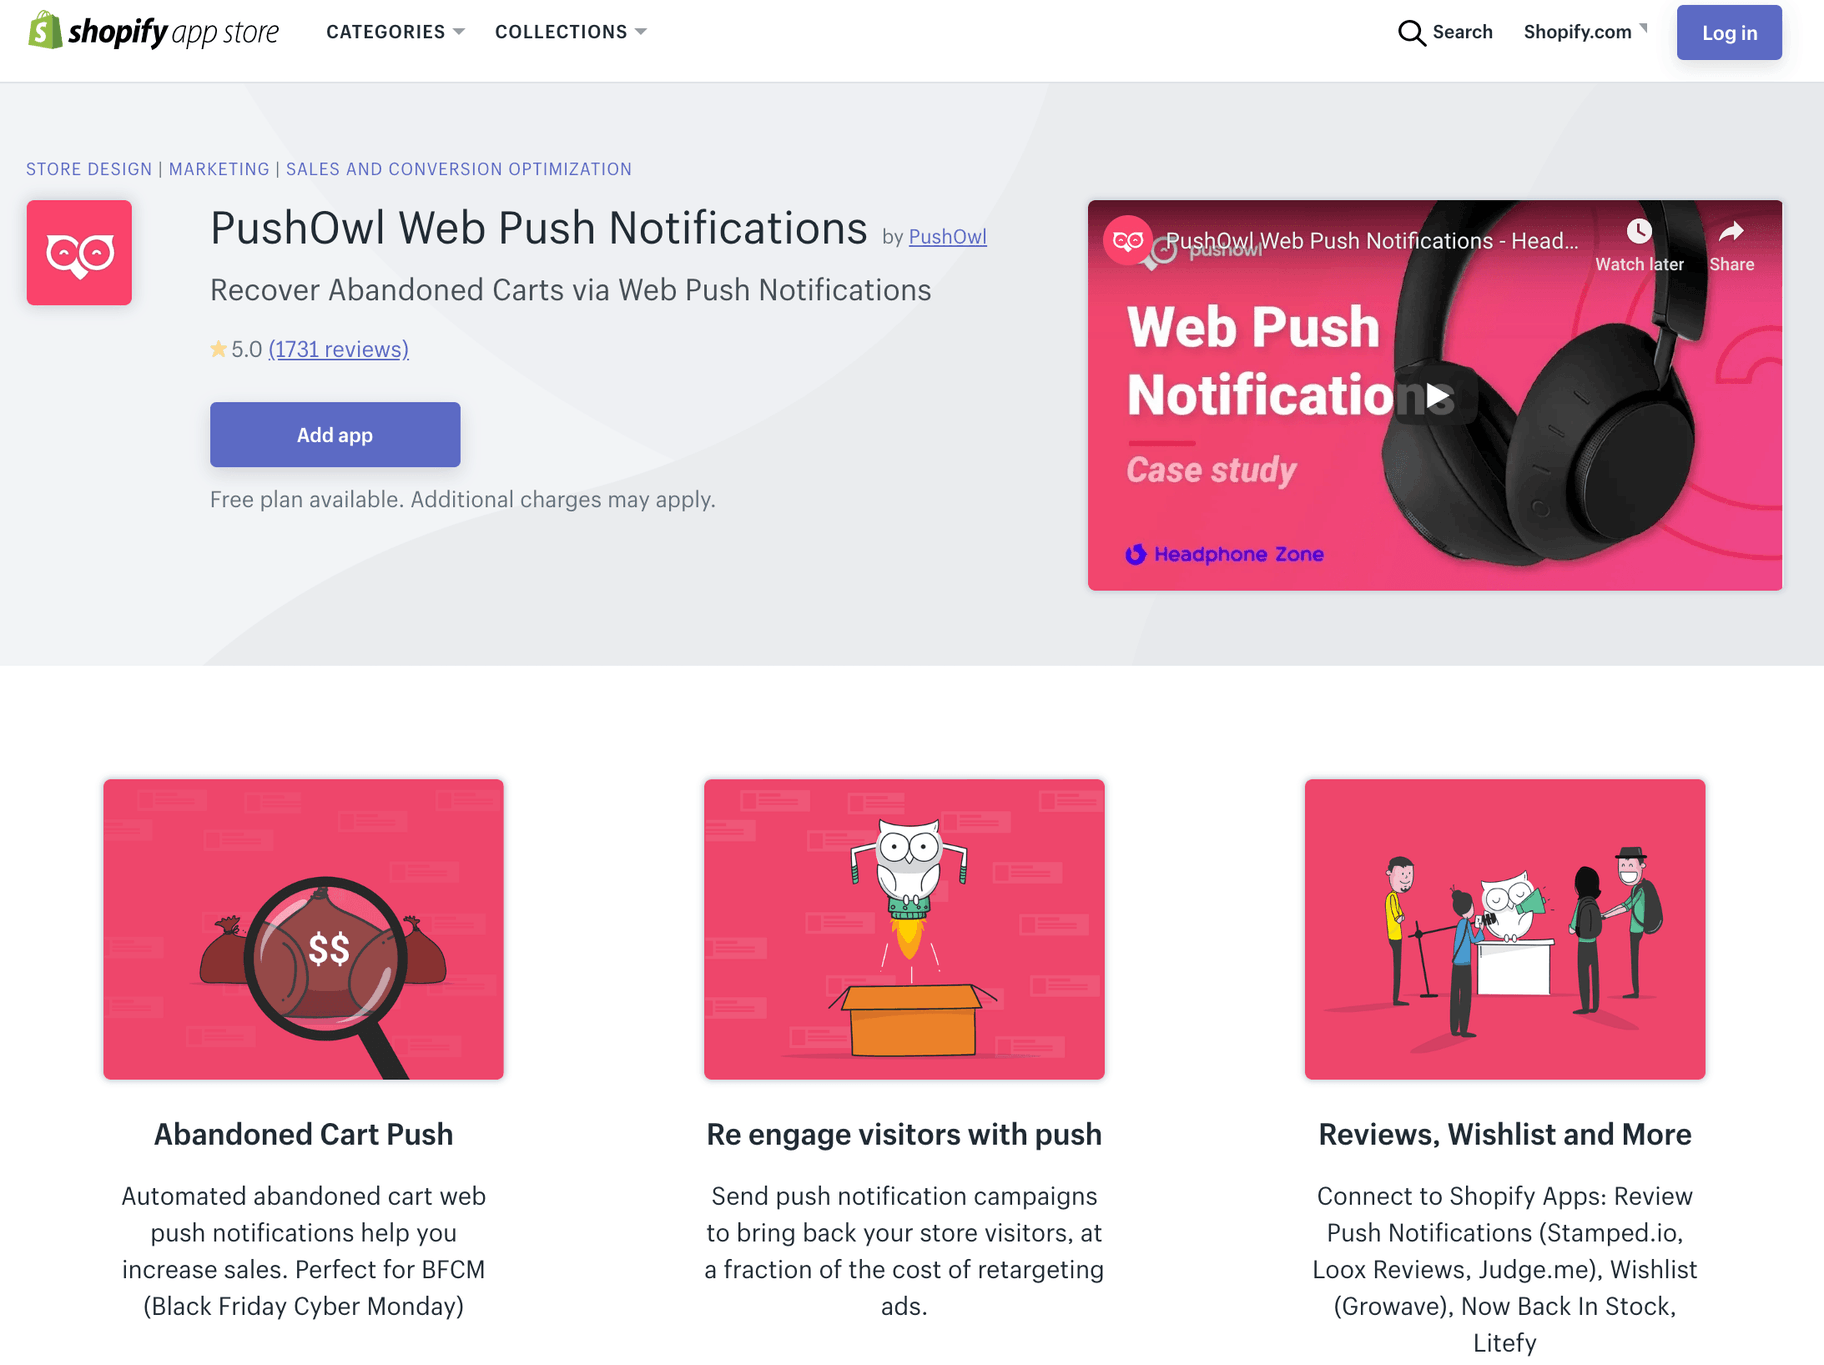 Web Push Notifications by PushOwl